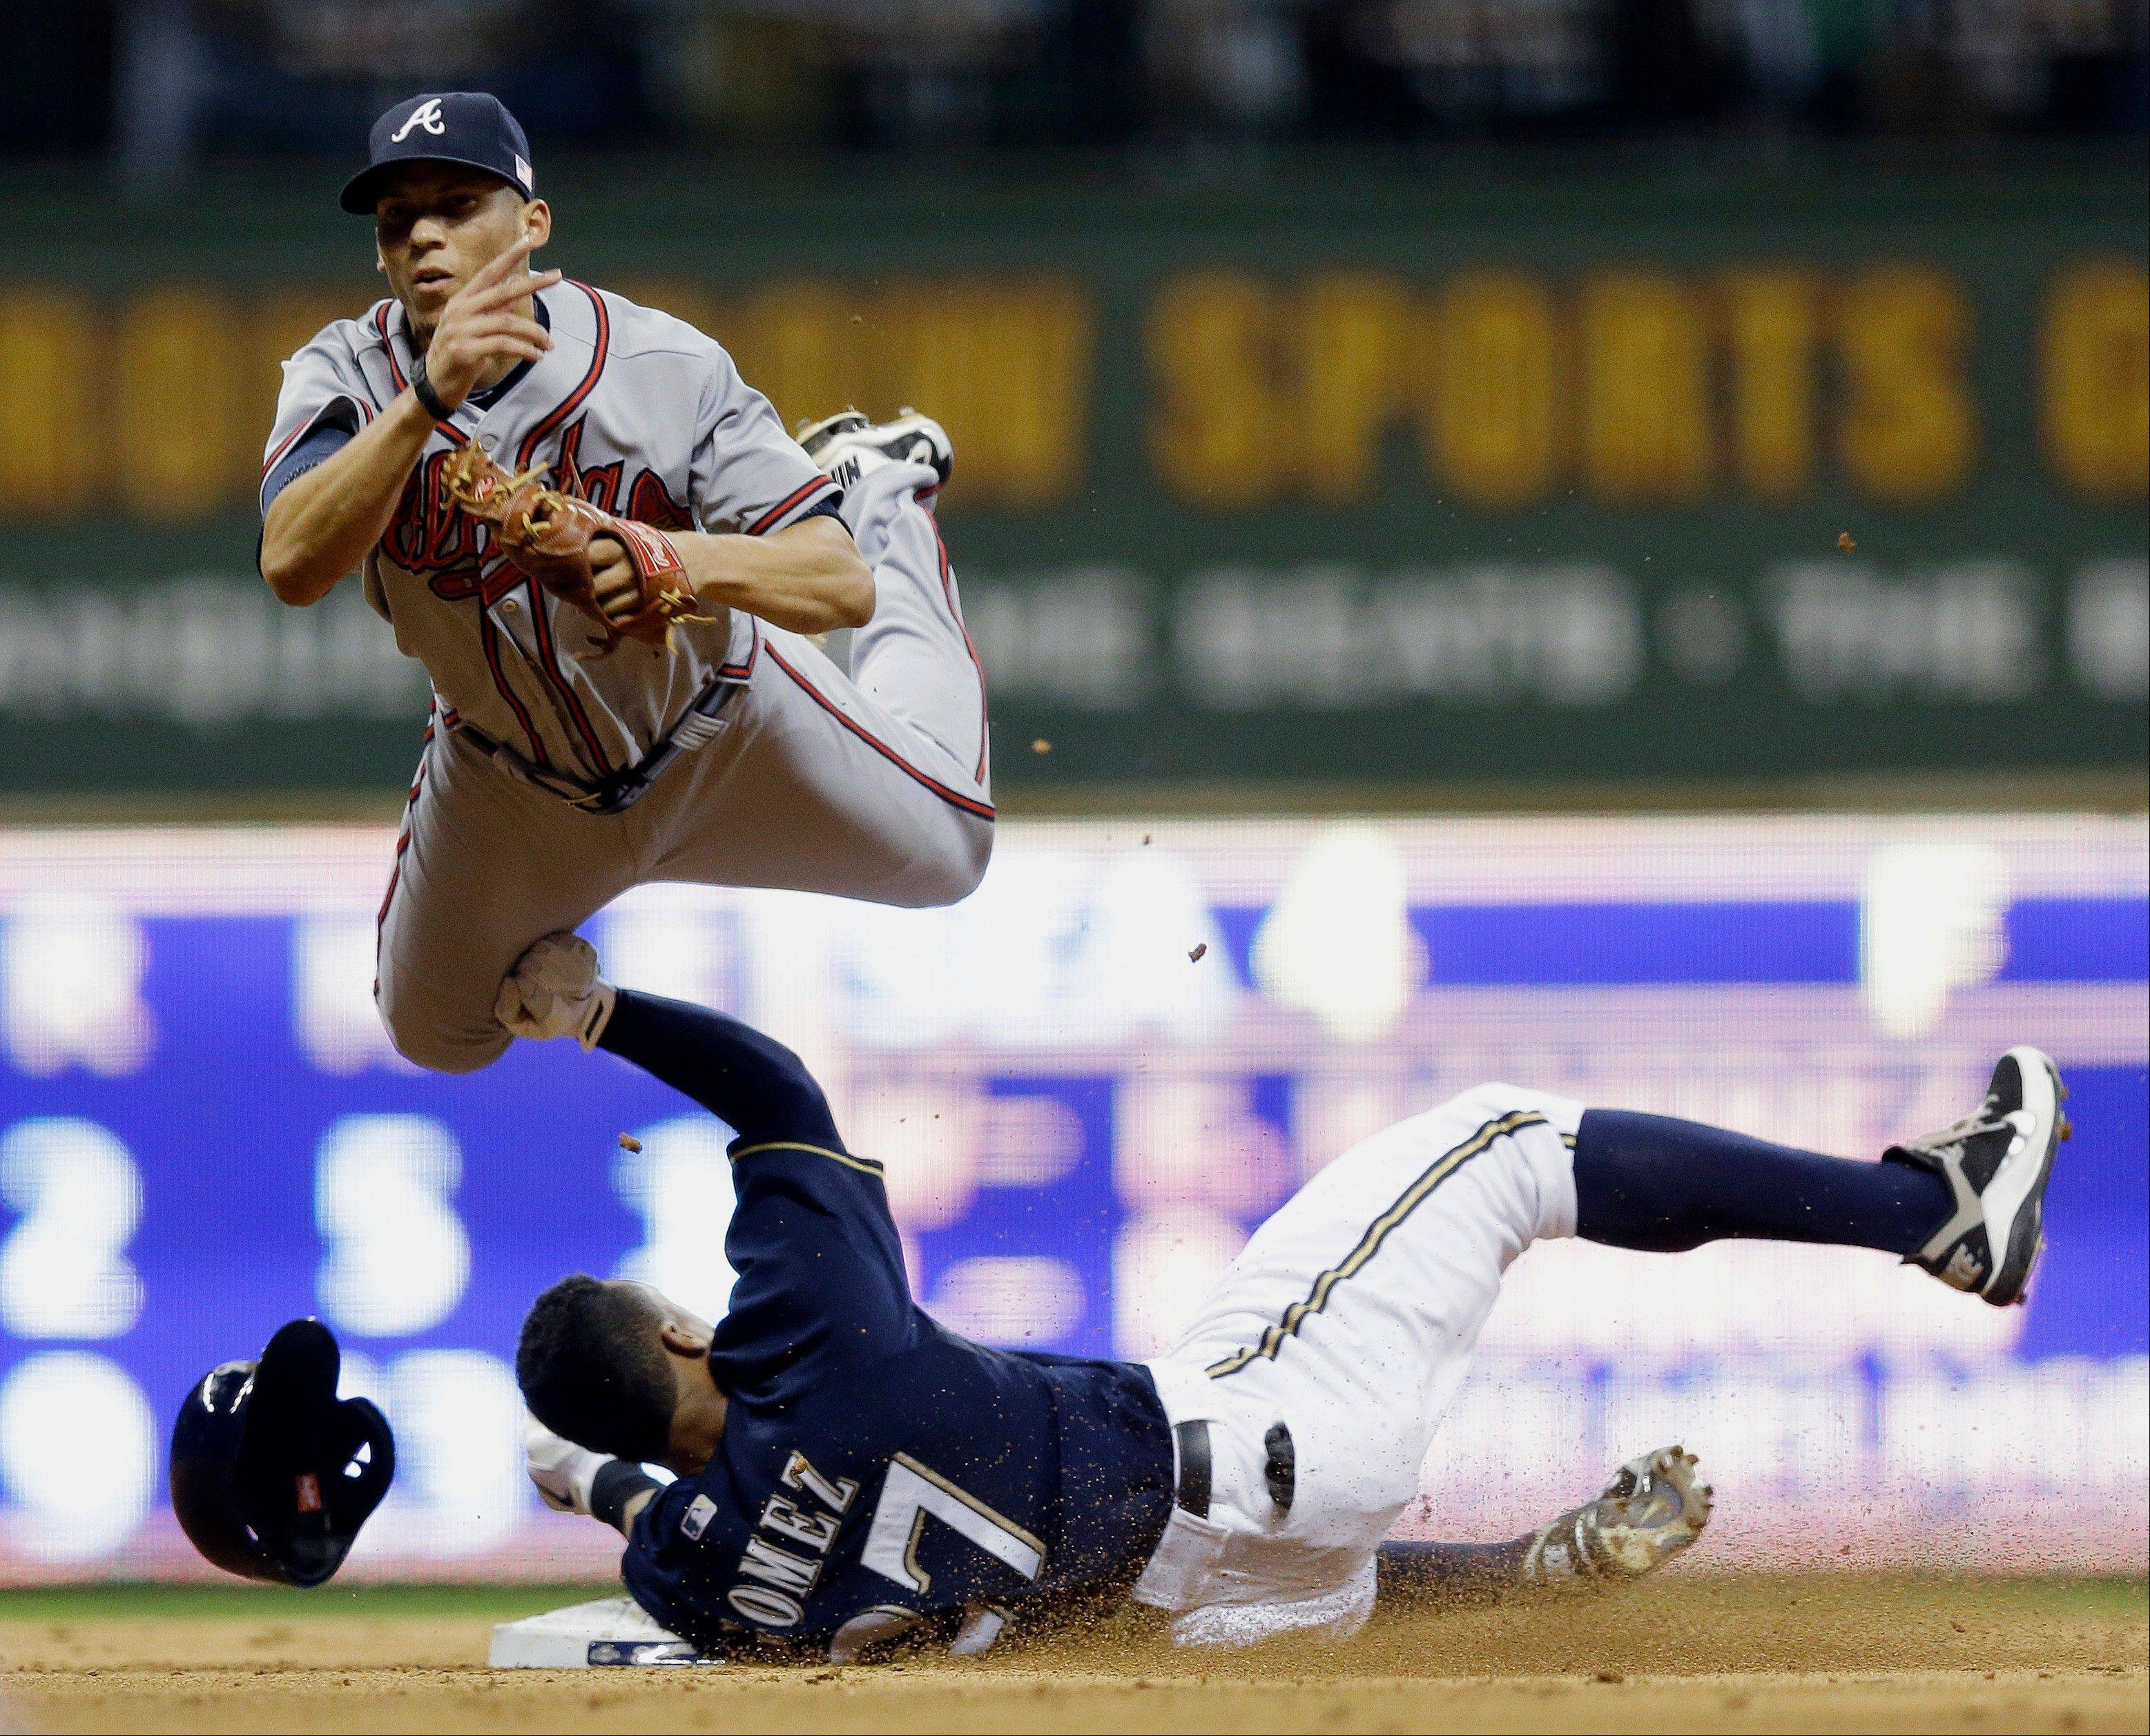 Atlanta's Andrelton Simmons leaps over Milwaukee's Carlos Gomez as he tries to turn a double play on a ball hit by Jean Segura during the seventh inning Tuesday in Milwaukee. Segura beat the throw.